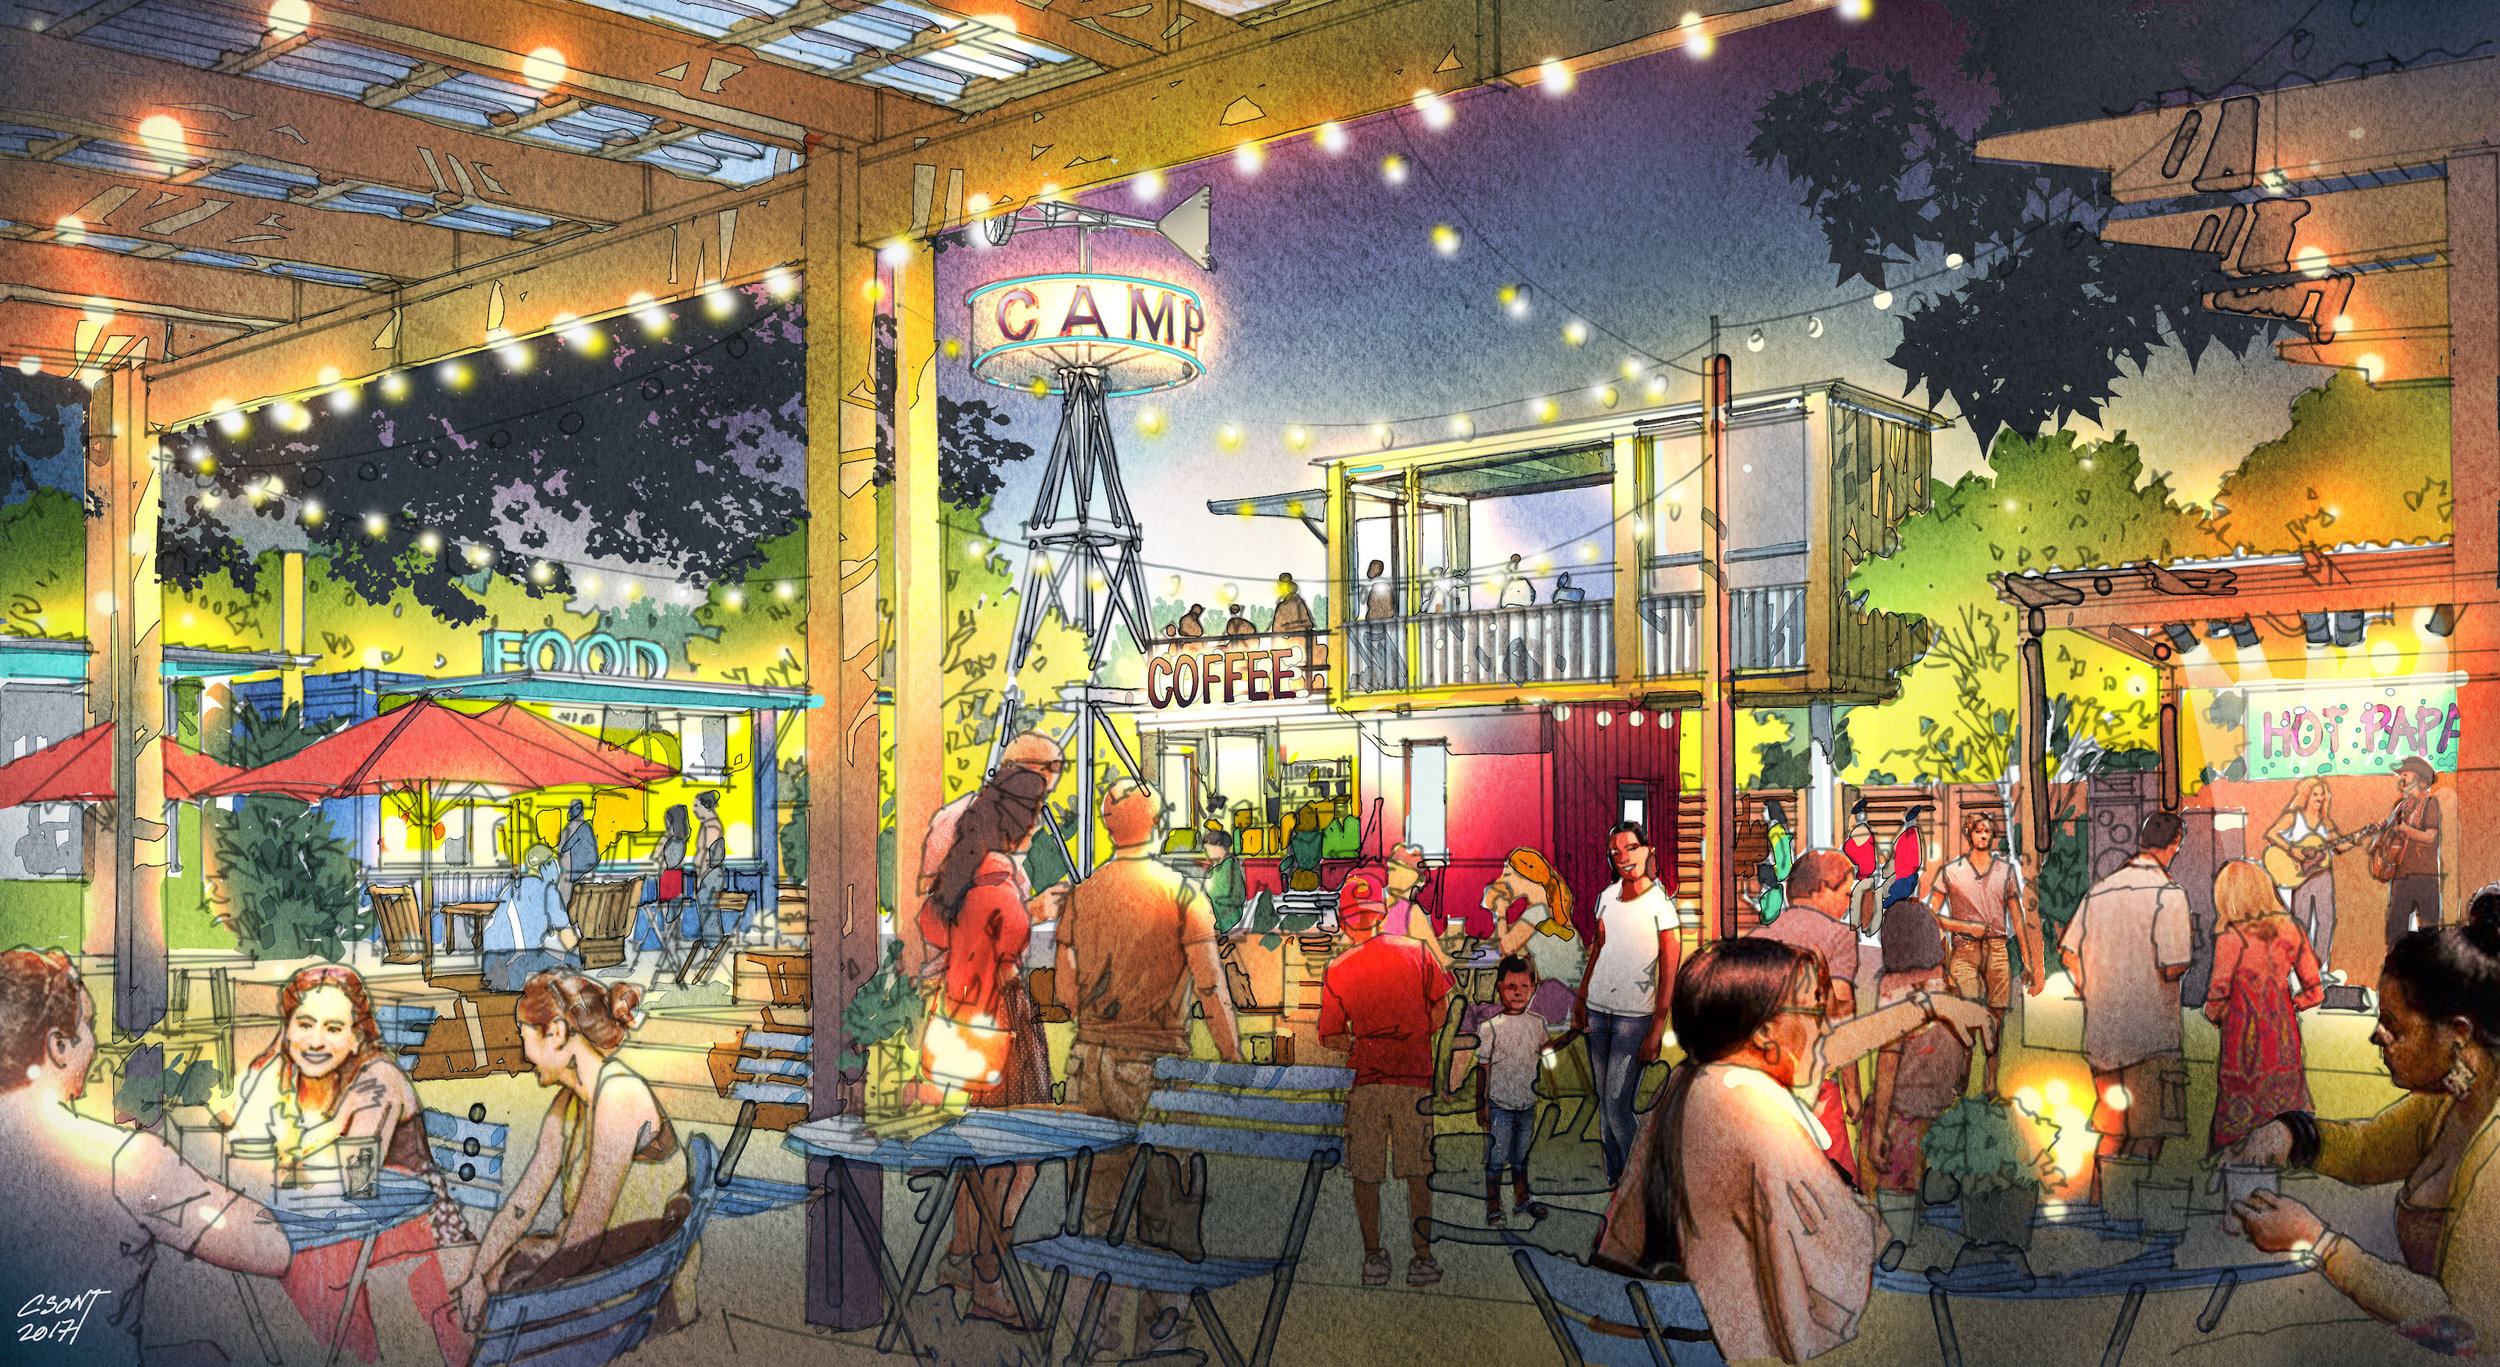 2226MidCity_PerspContainerPark01_dc.jpg